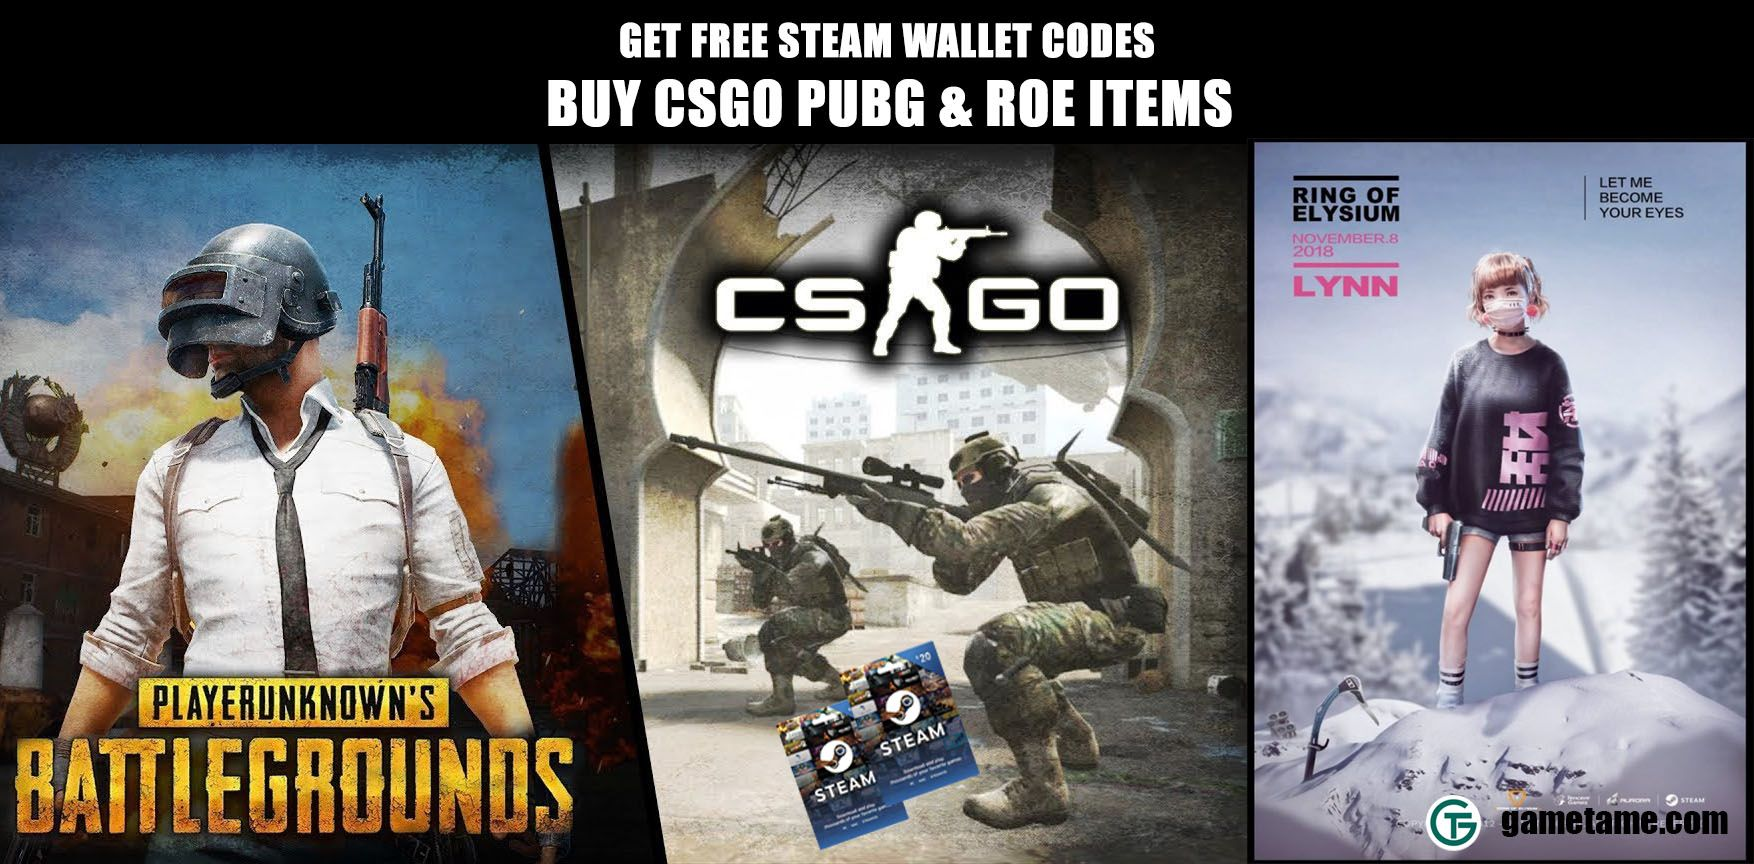 Earn Free Steam Wallet Code And Buy Steam Games You Want